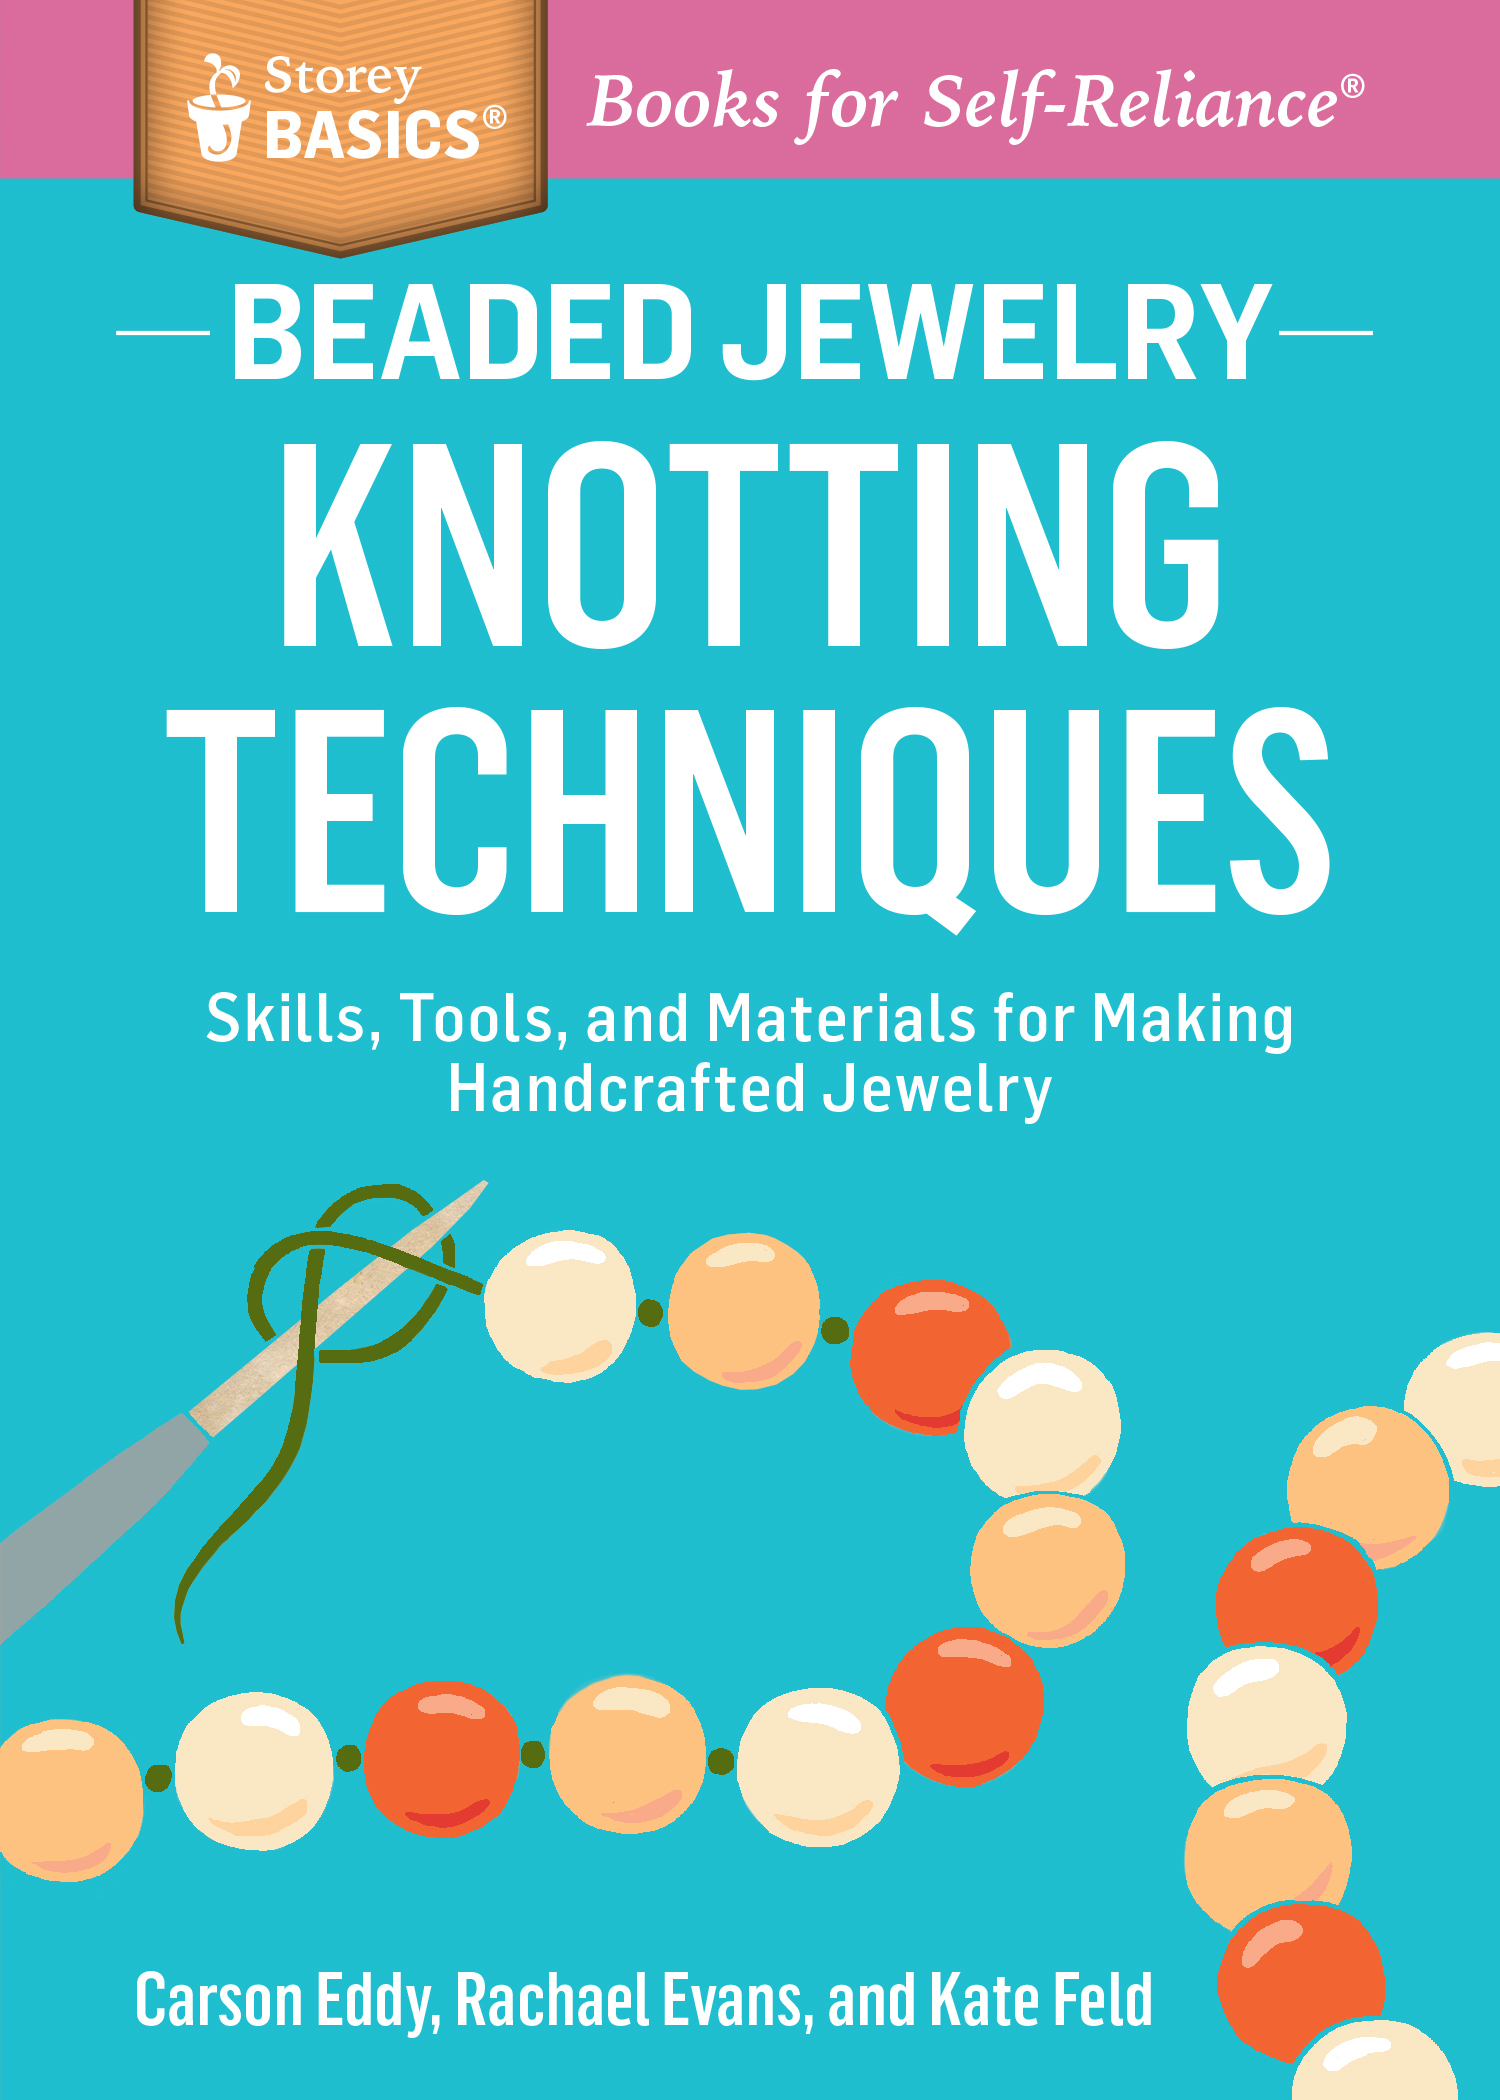 Beaded Jewelry: Knotting Techniques Skills, Tools, and Materials for Making Handcrafted Jewelry. A Storey BASICS® Title - Carson Eddy